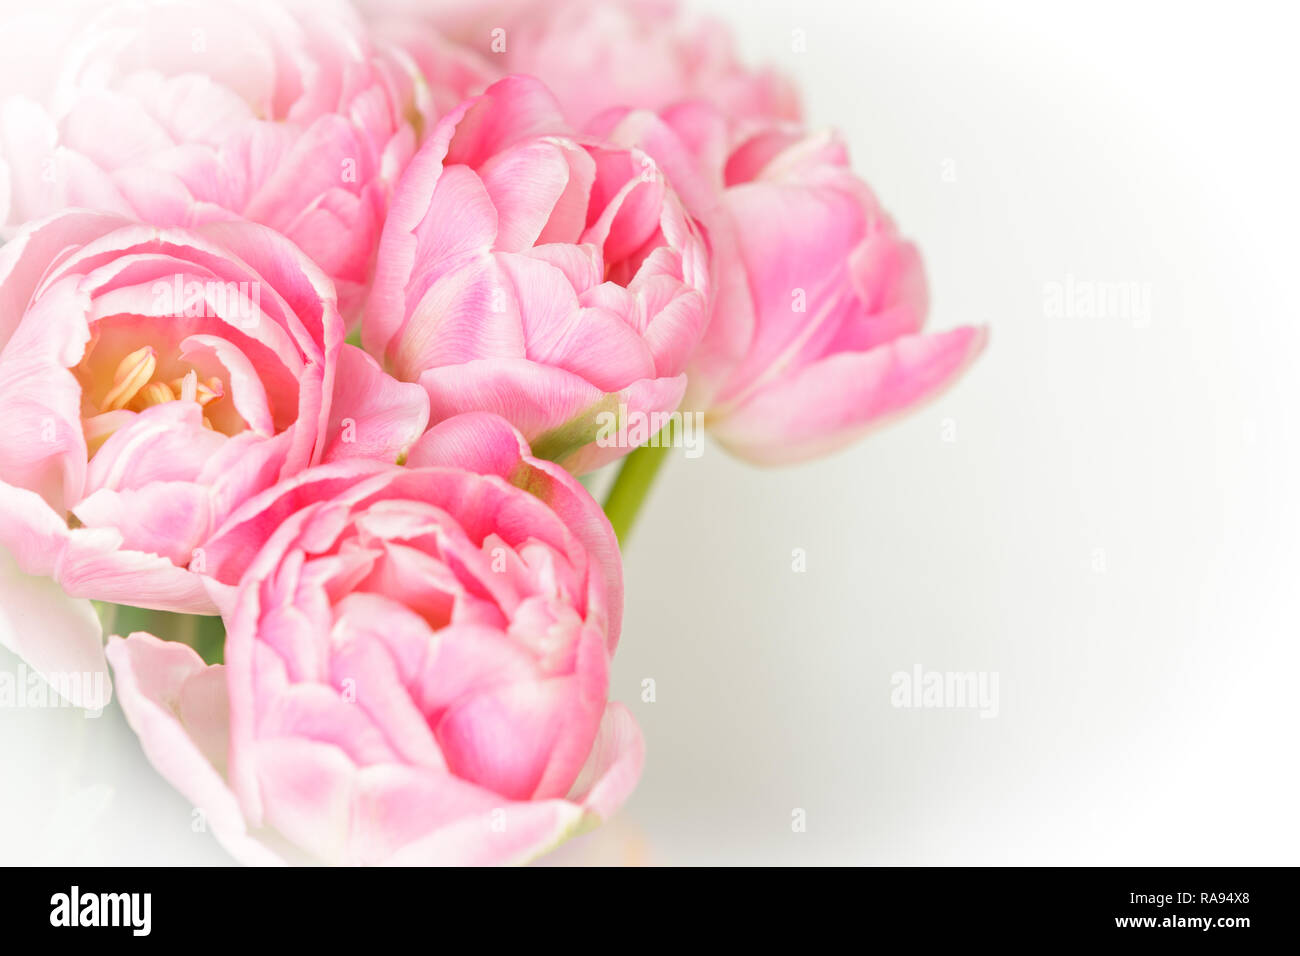 Bunch of tulip flowers in shades of pink against white, nostalgic and romantic background template for florists or greeting cards Stock Photo